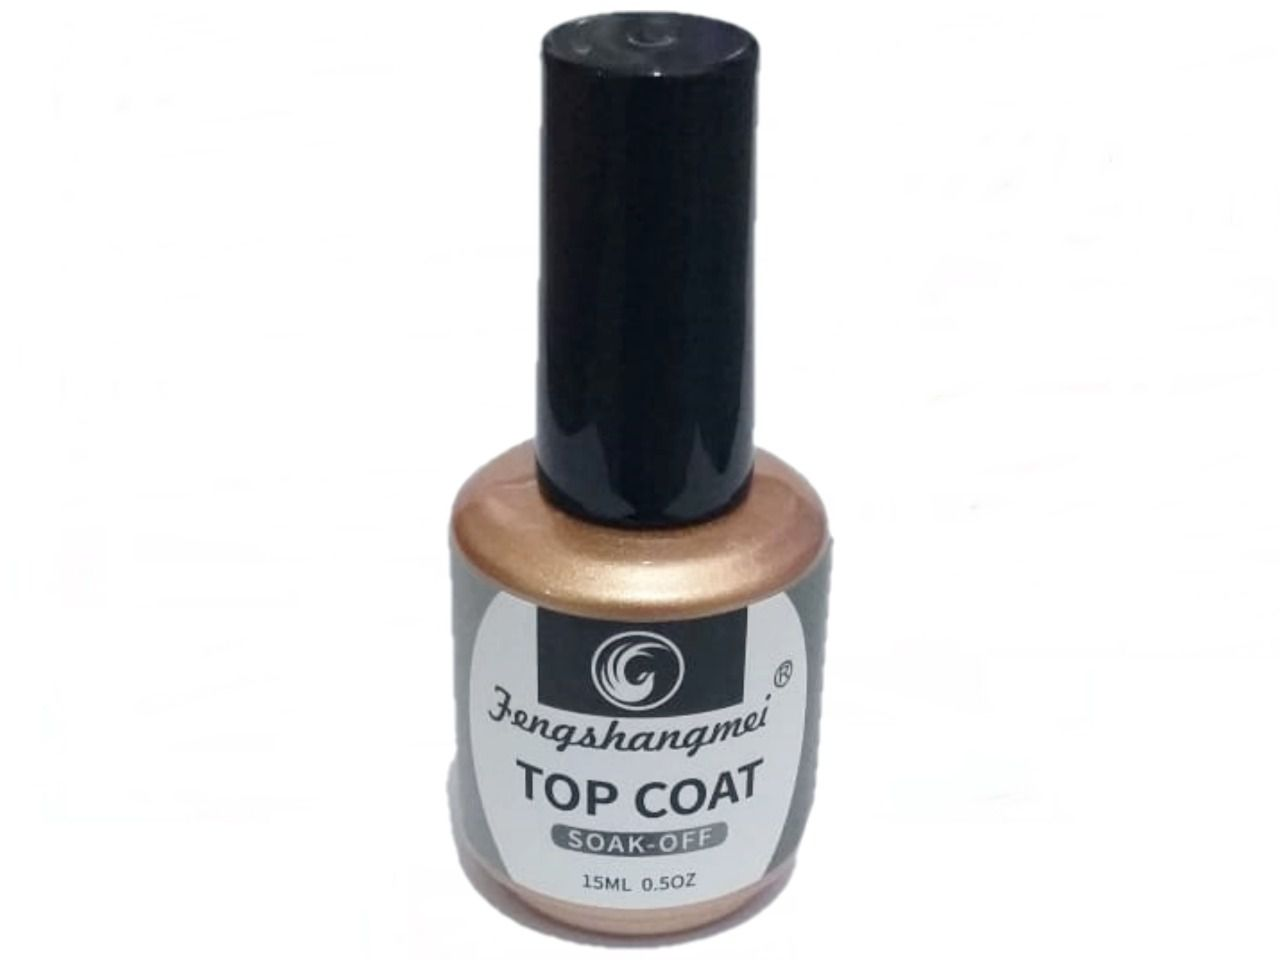 Top Coat Soak- Off Dourado Fengshangmei Unha Gel Acrigel 15ml